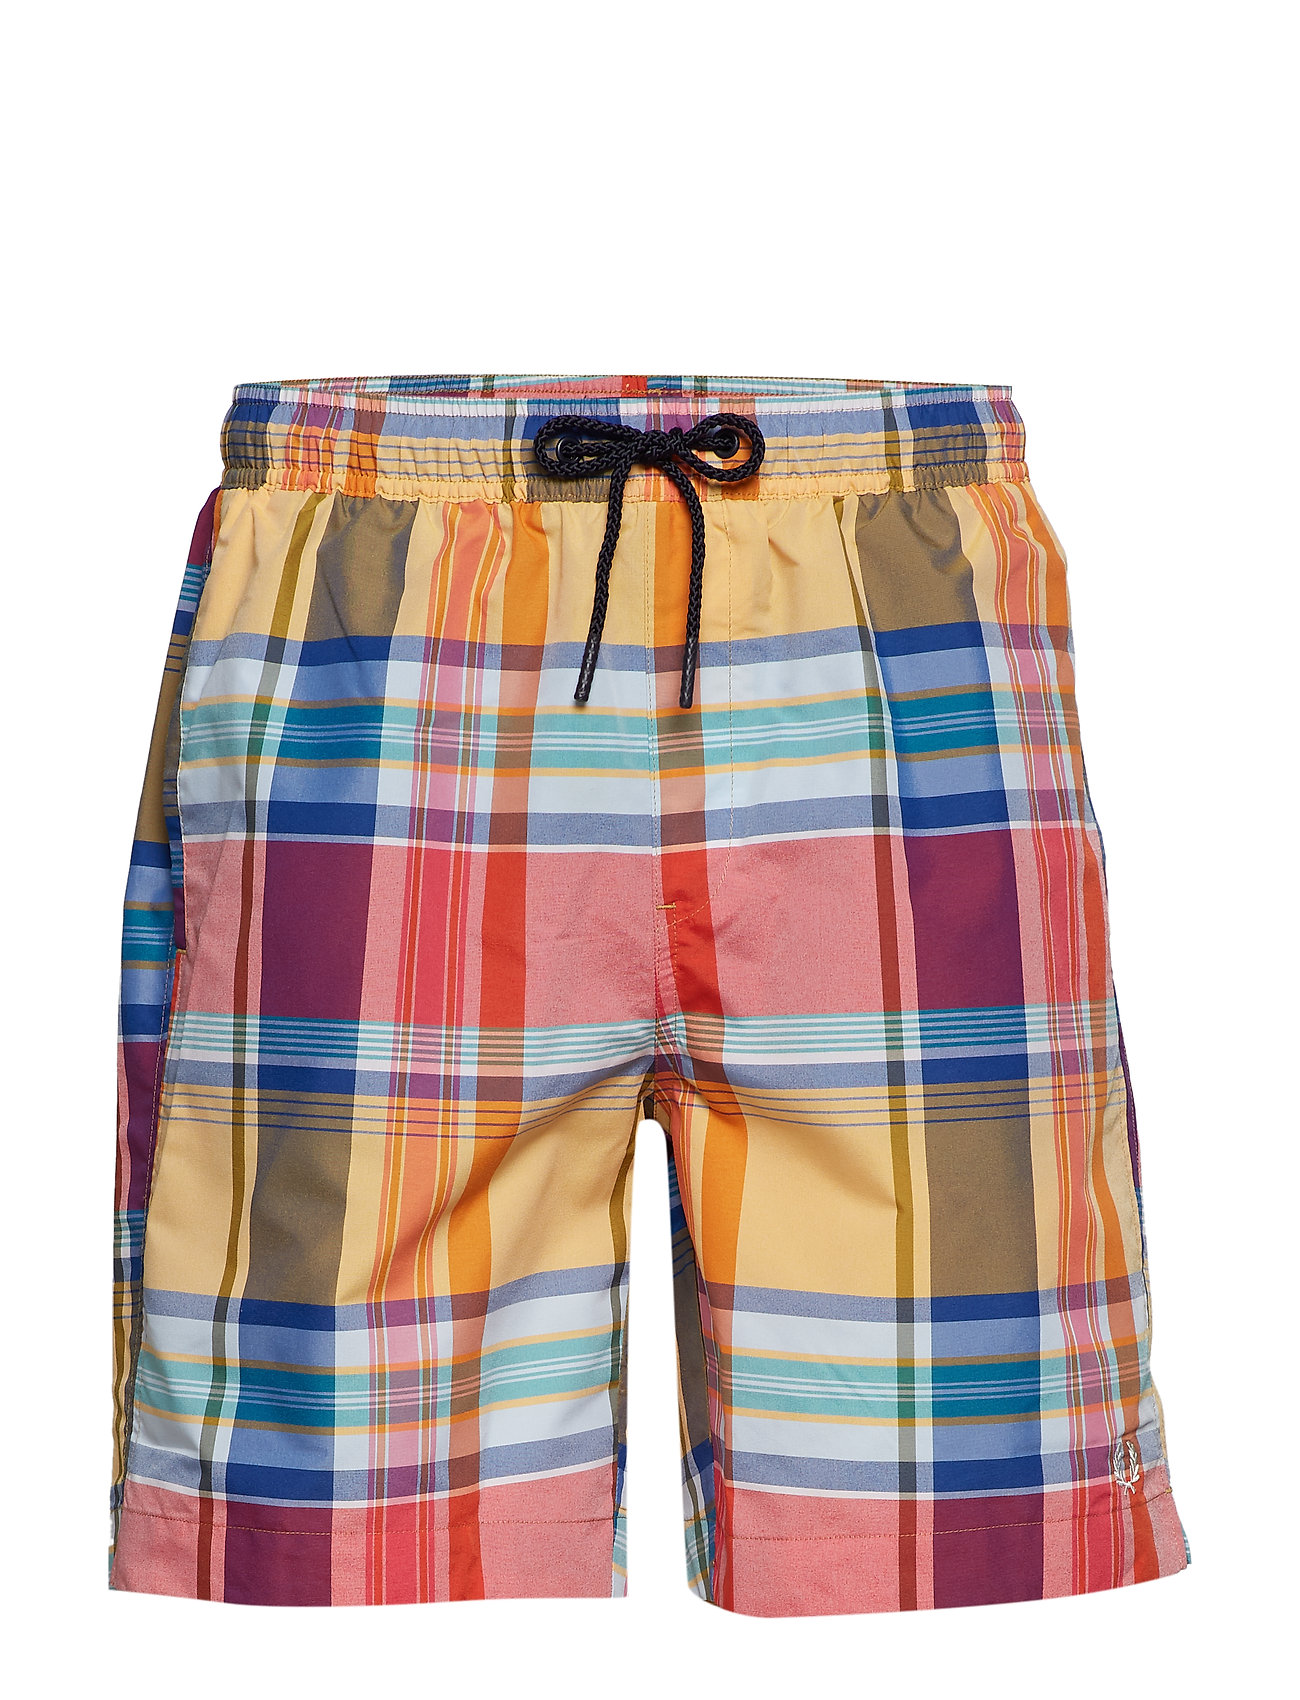 Fred Perry MADRAS SWIMSHORT - RED